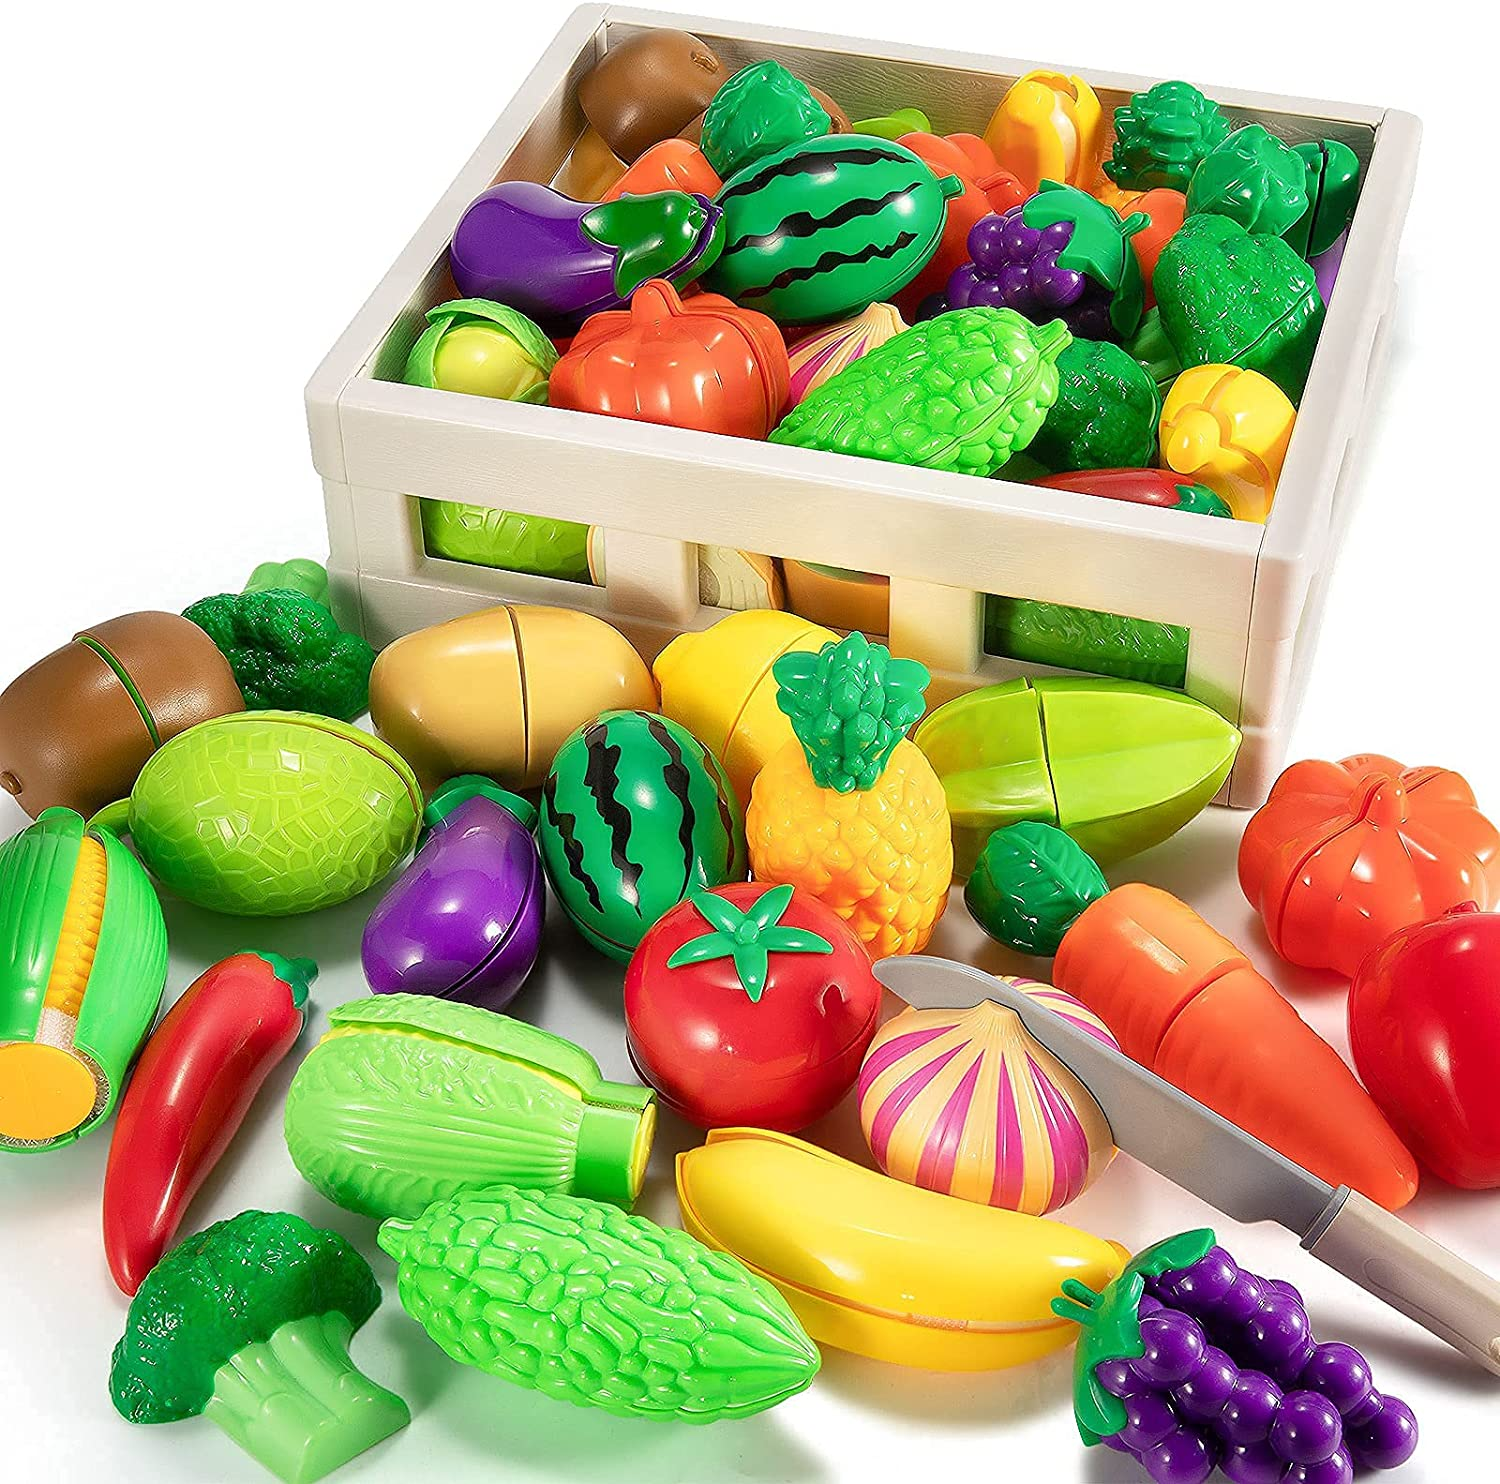 TEMI Cutting Play Food Toy for Kids Kitchen, Pretend Fruit and Vegetables Accessories with Storage Case, Map and Knife, Educational Toy for Toddler Children Birthday Gift